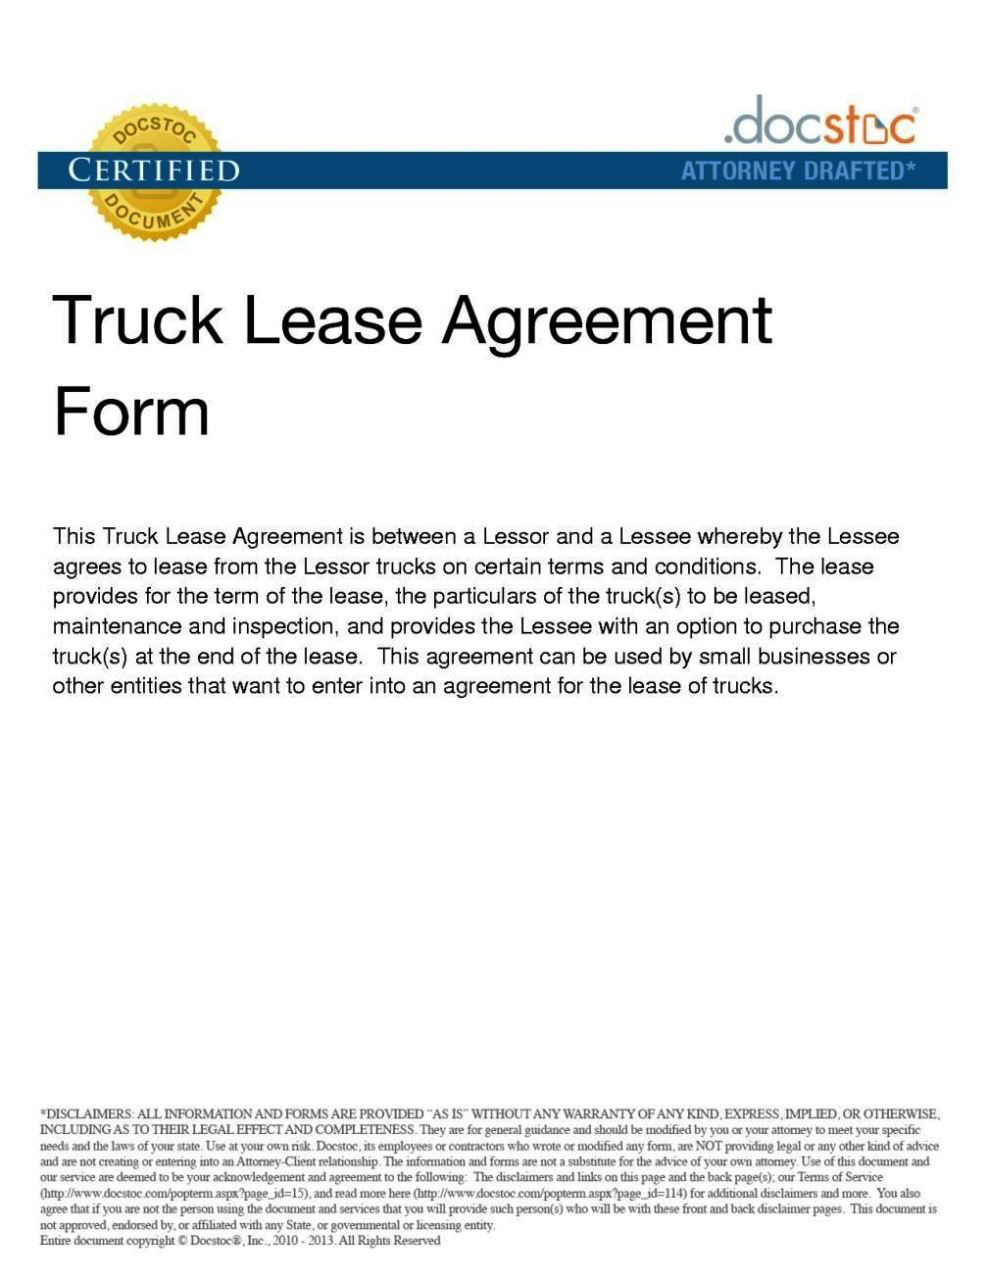 Truck Rental Agreement Form Mersnoforum